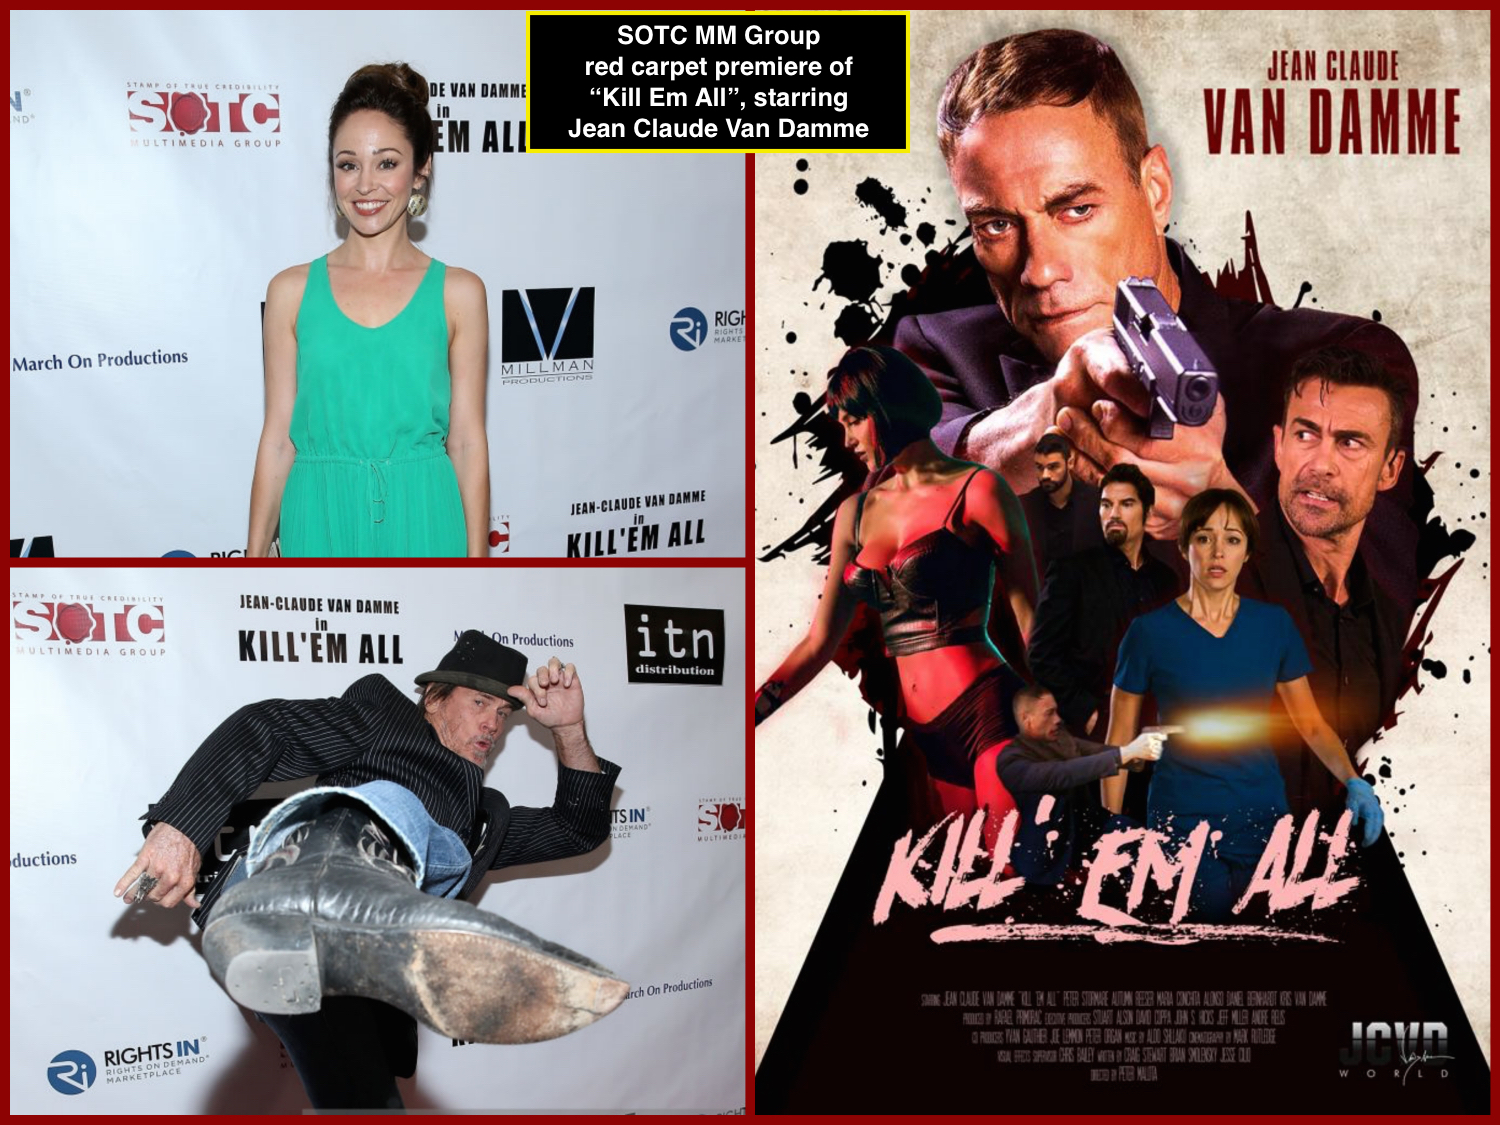 KillEmAll Premiere4_Fotor_Collage.jpg